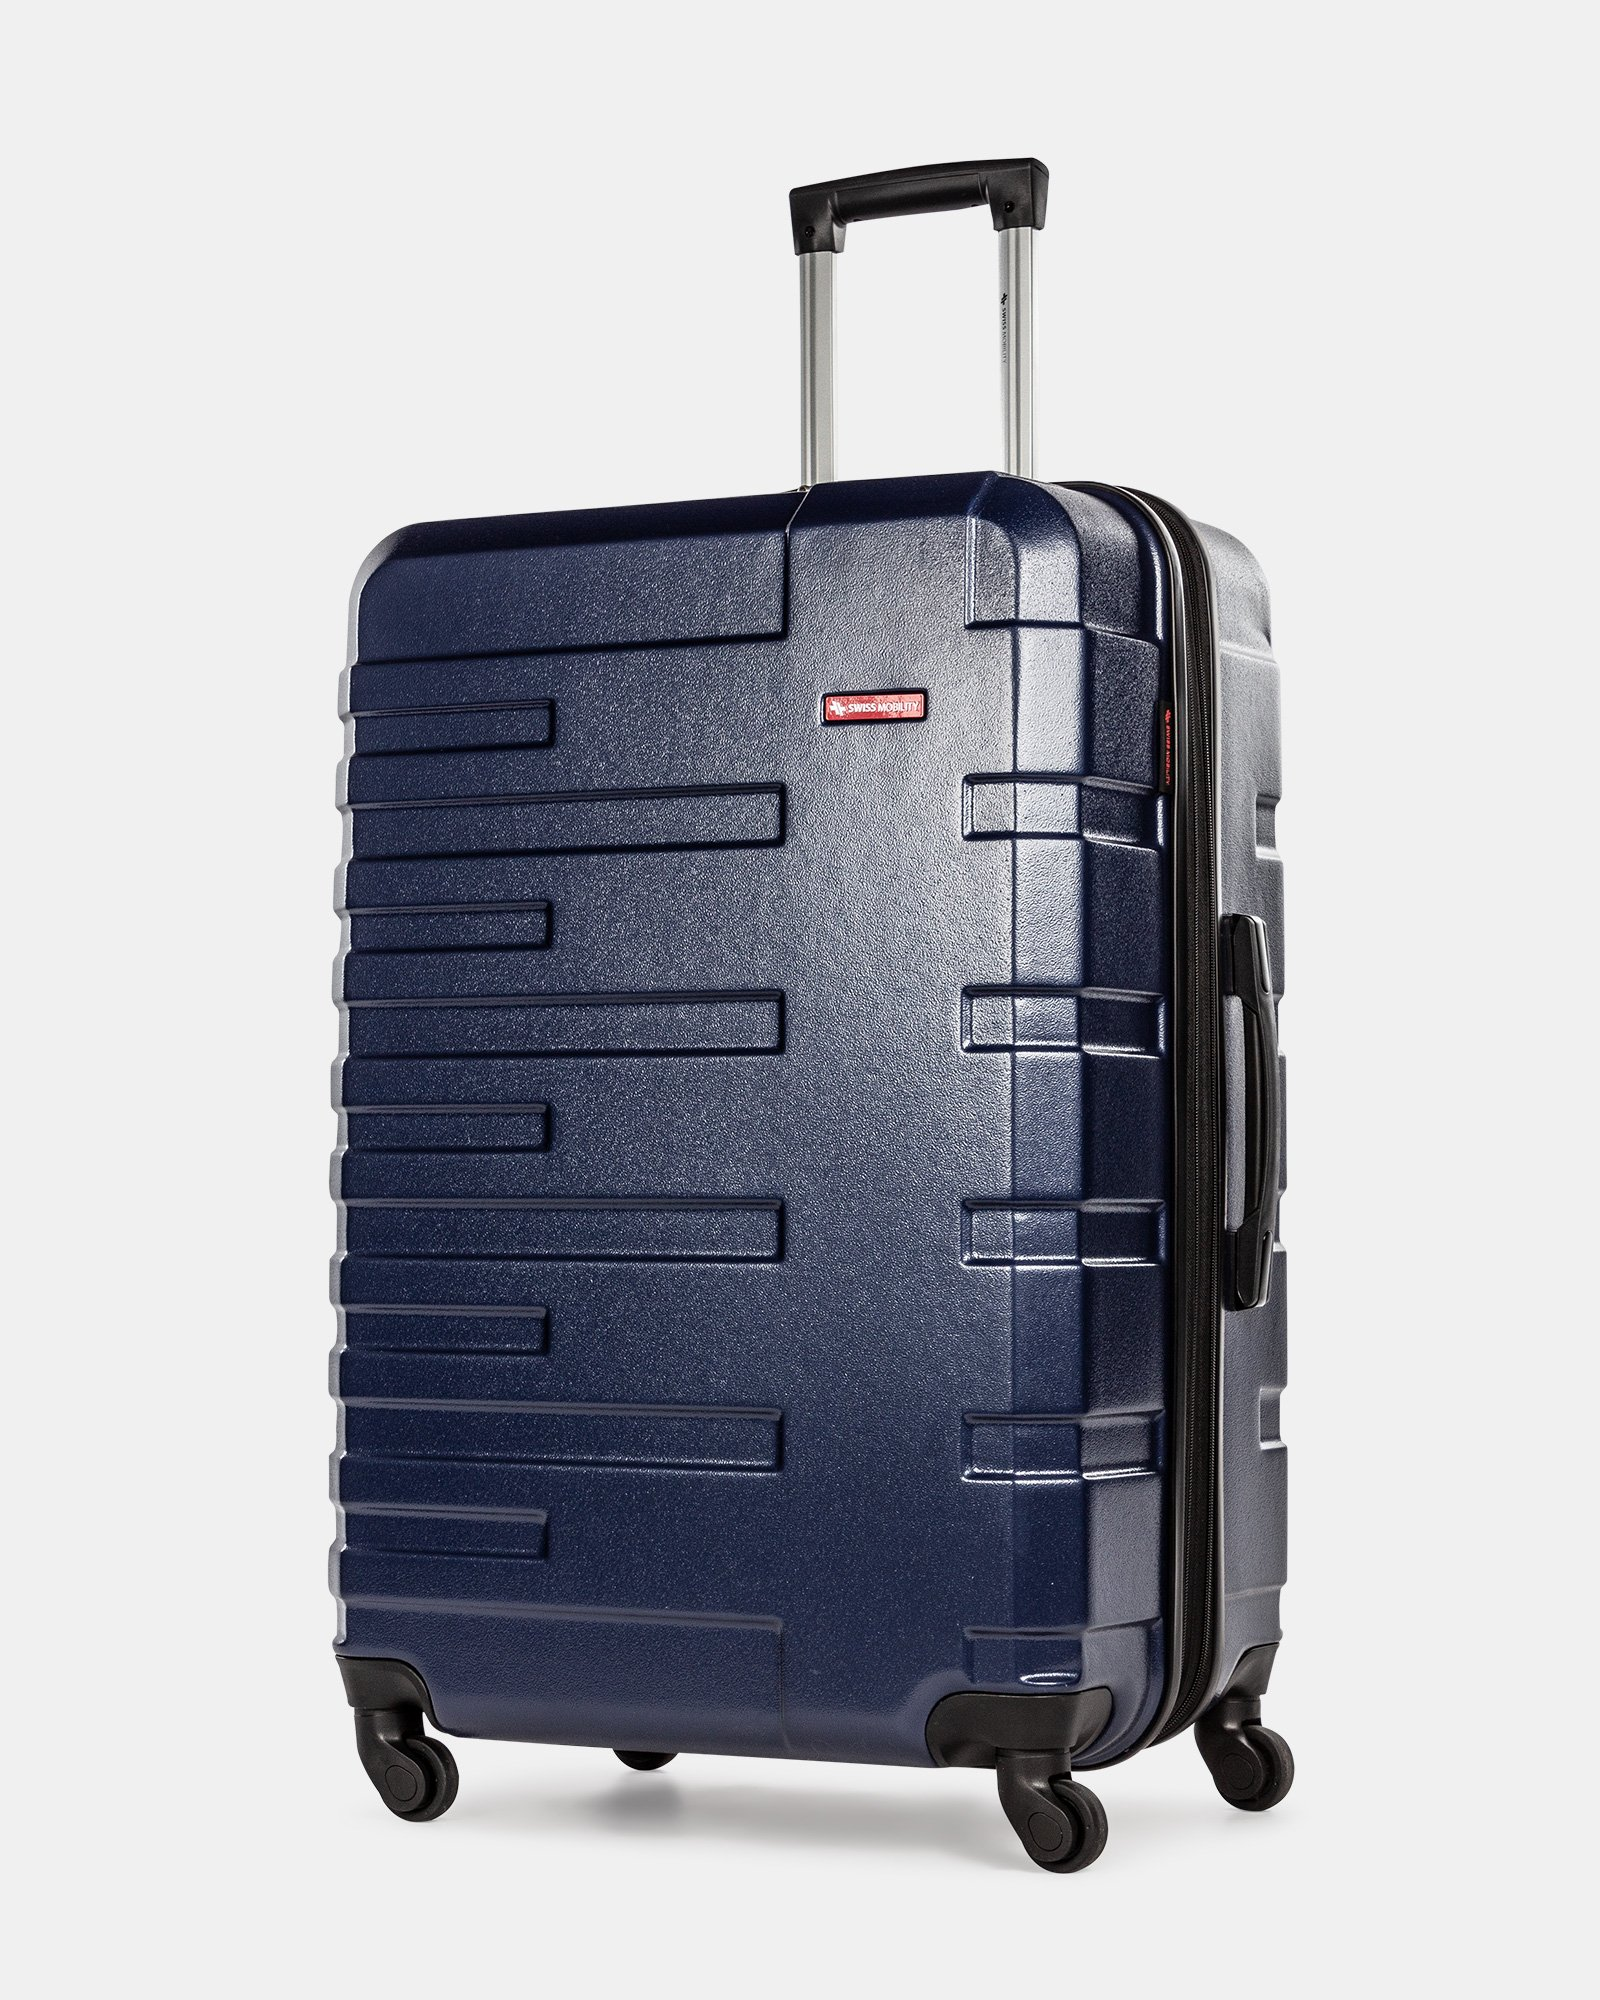 Quad - Lightweight Hardside Luggage 28'' with Spinner wheels - Blue - Swiss Mobility - Zoom